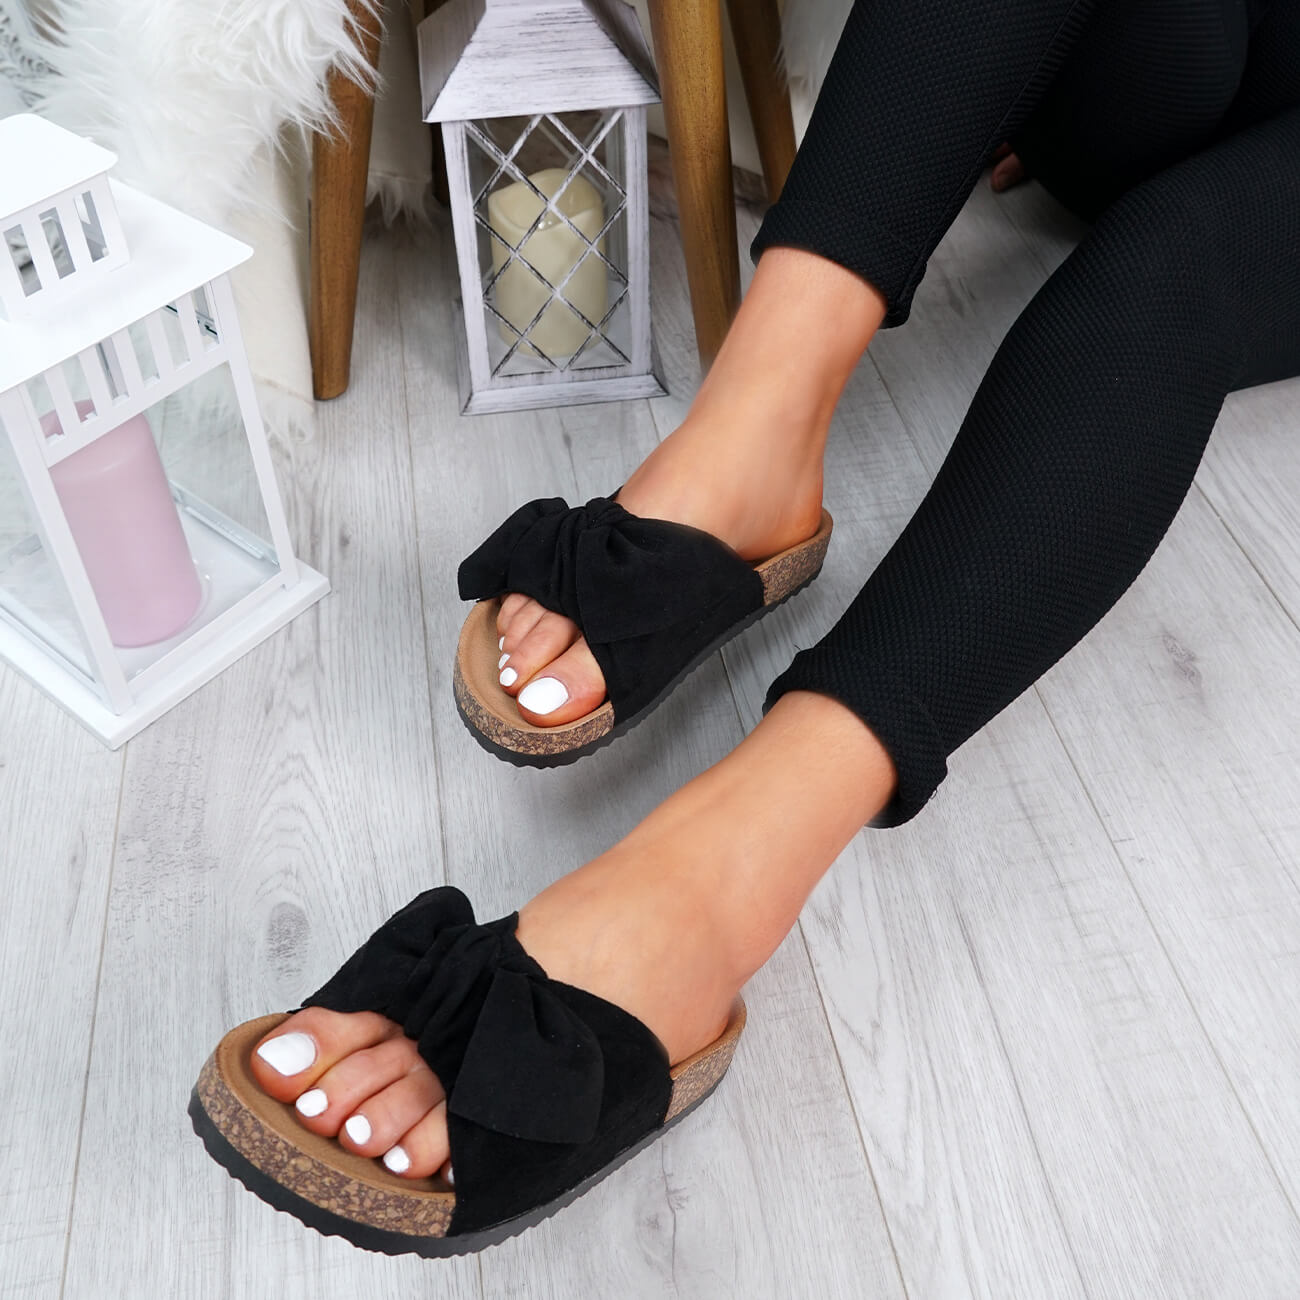 WOMENS-LADIES-SLIP-ON-FLAT-SANDALS-BOW-SLIDERS-SUMMER-CASUAL-SHOES-SIZE thumbnail 12